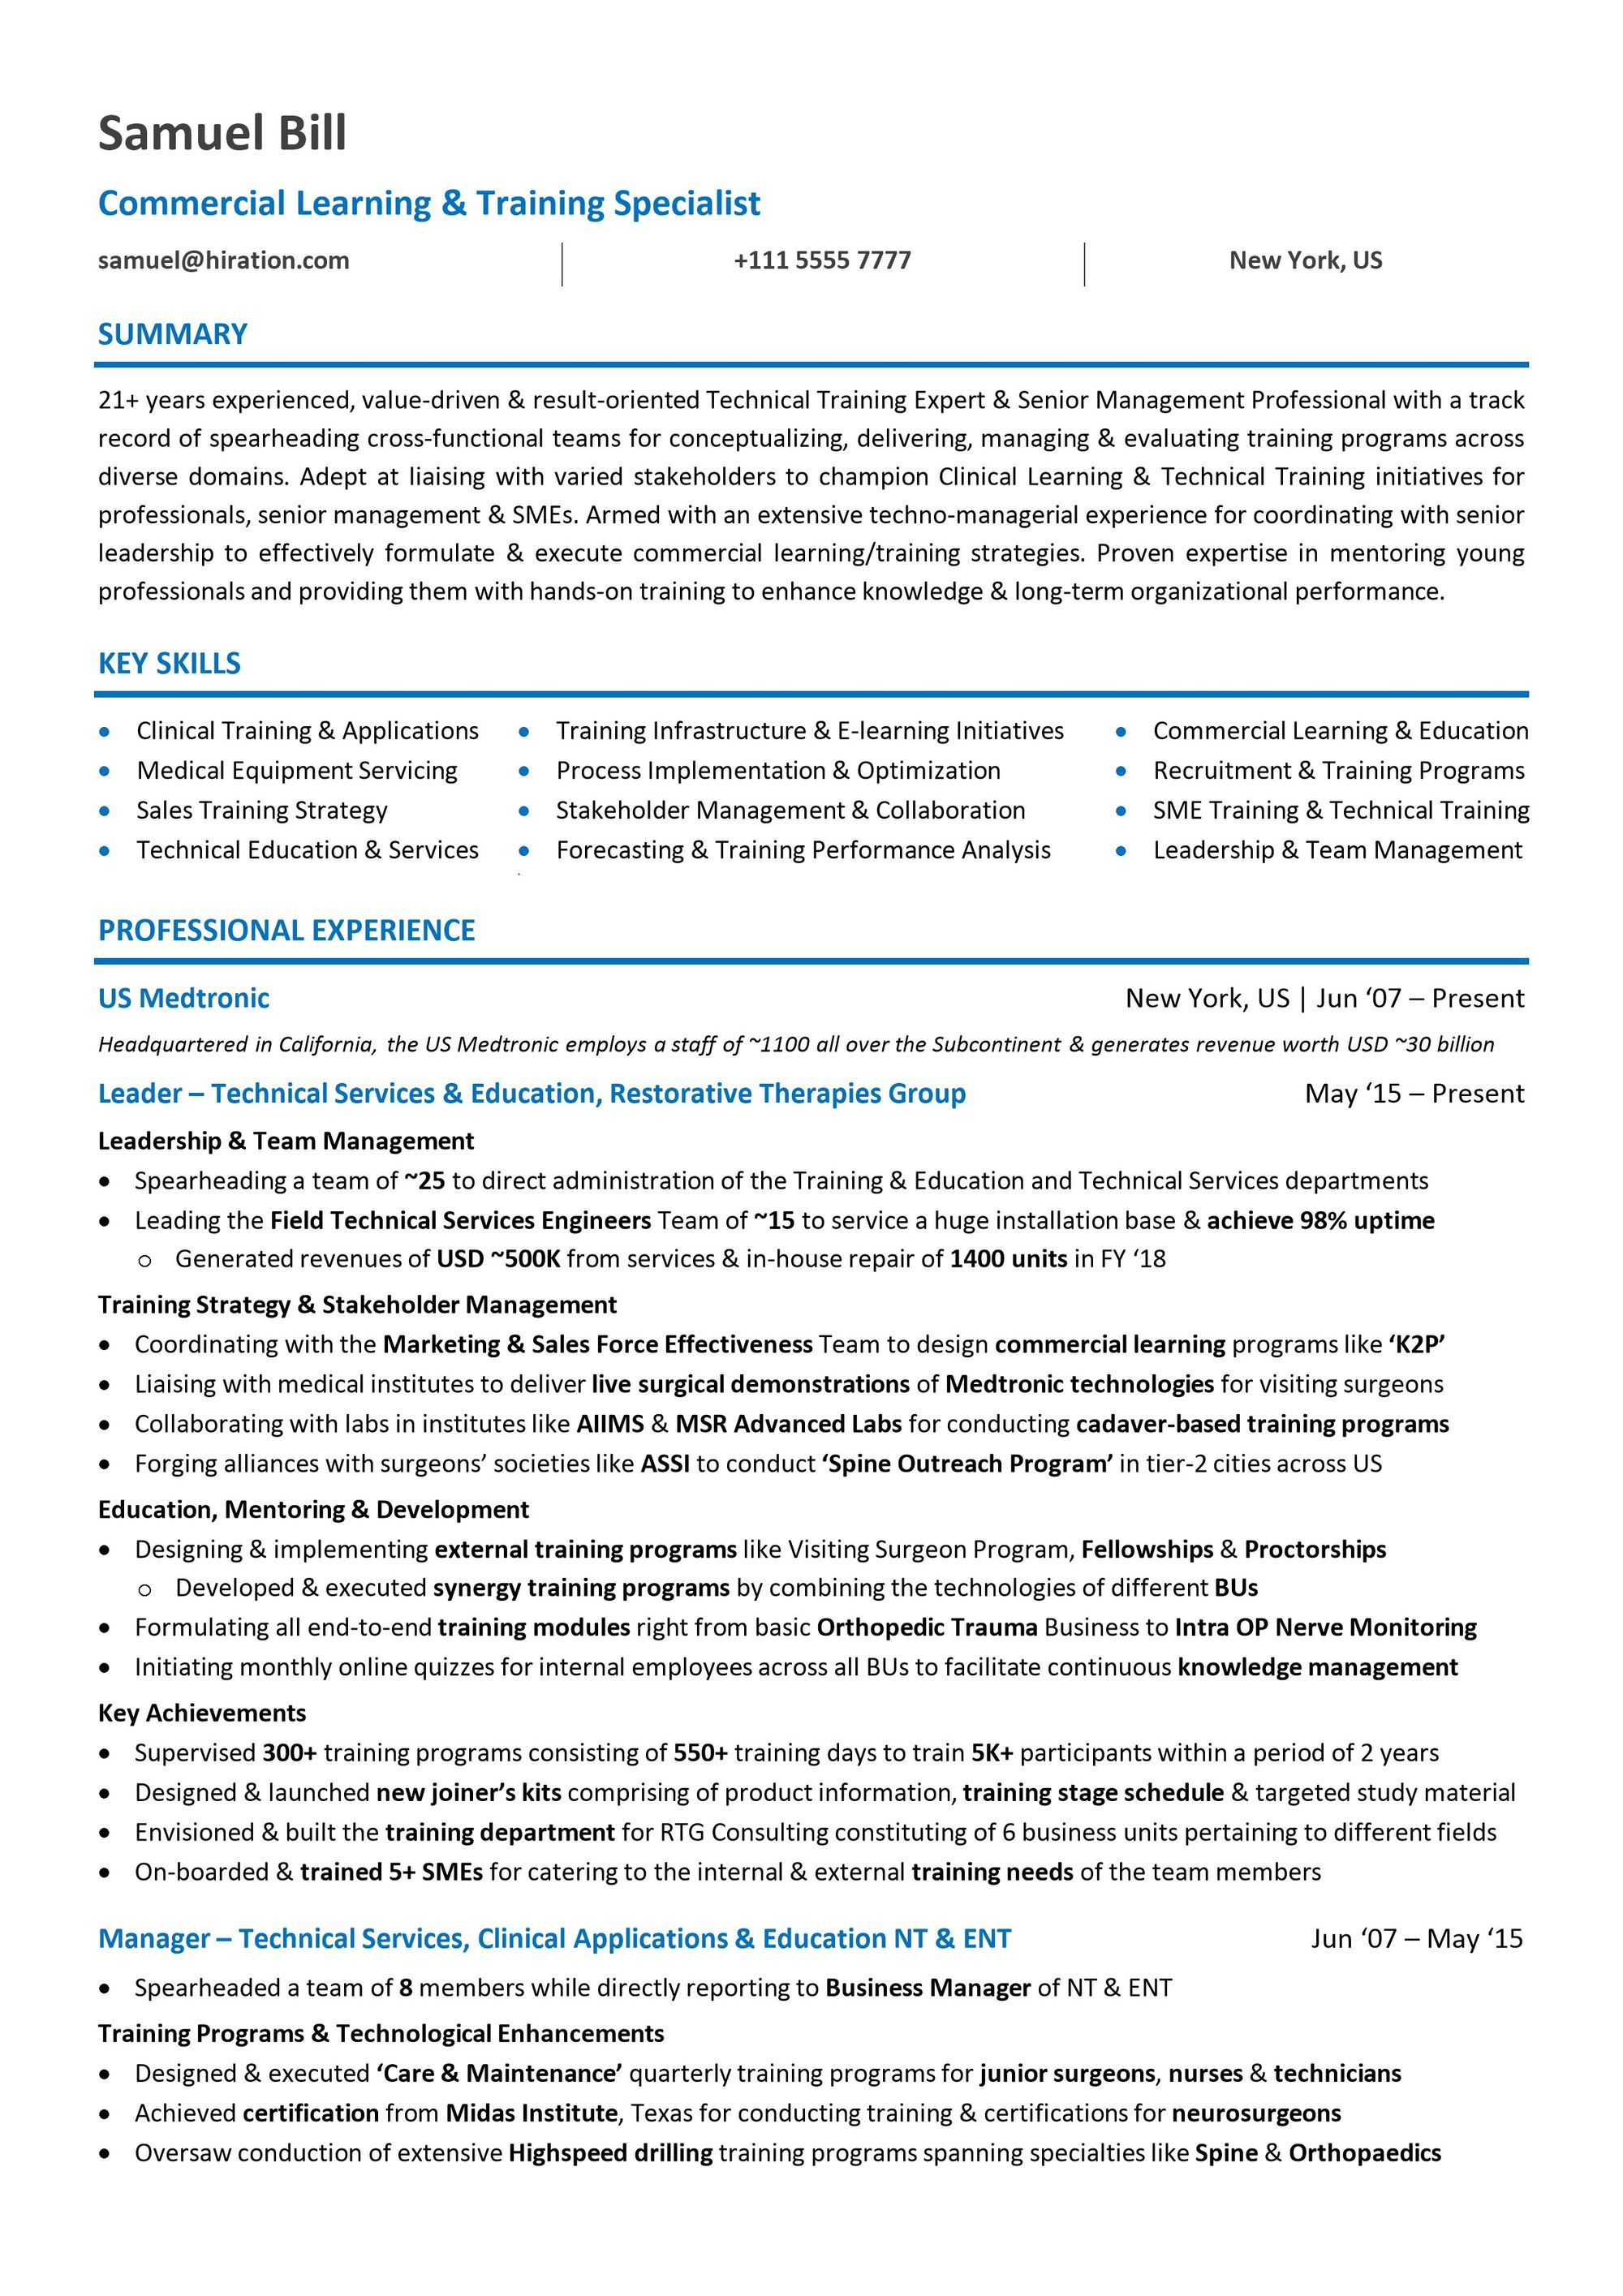 Career Change Resume: [2019] Guide to Resume for Career Change